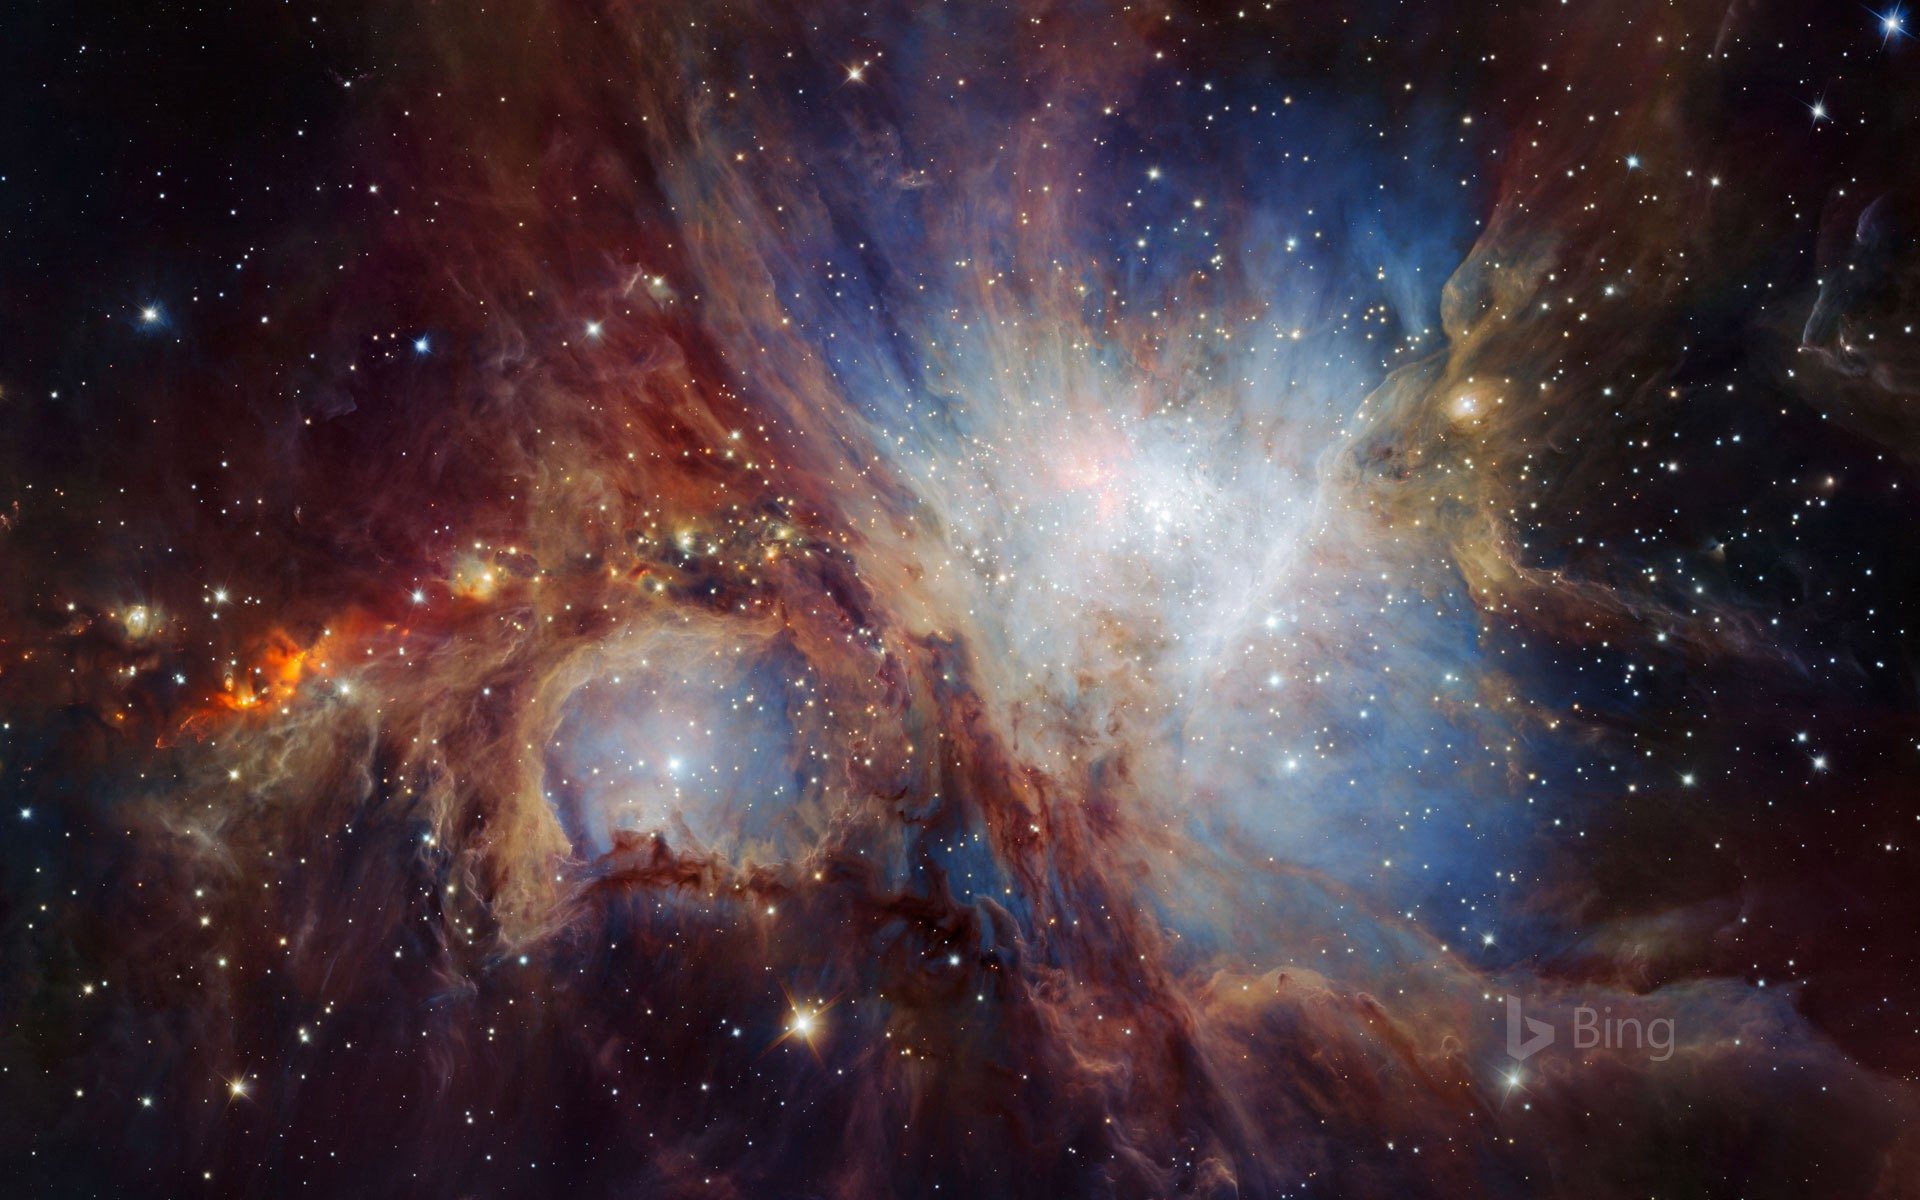 An infrared image of the Orion Nebula taken from the HAWK-I camera in Chile (© NASA)